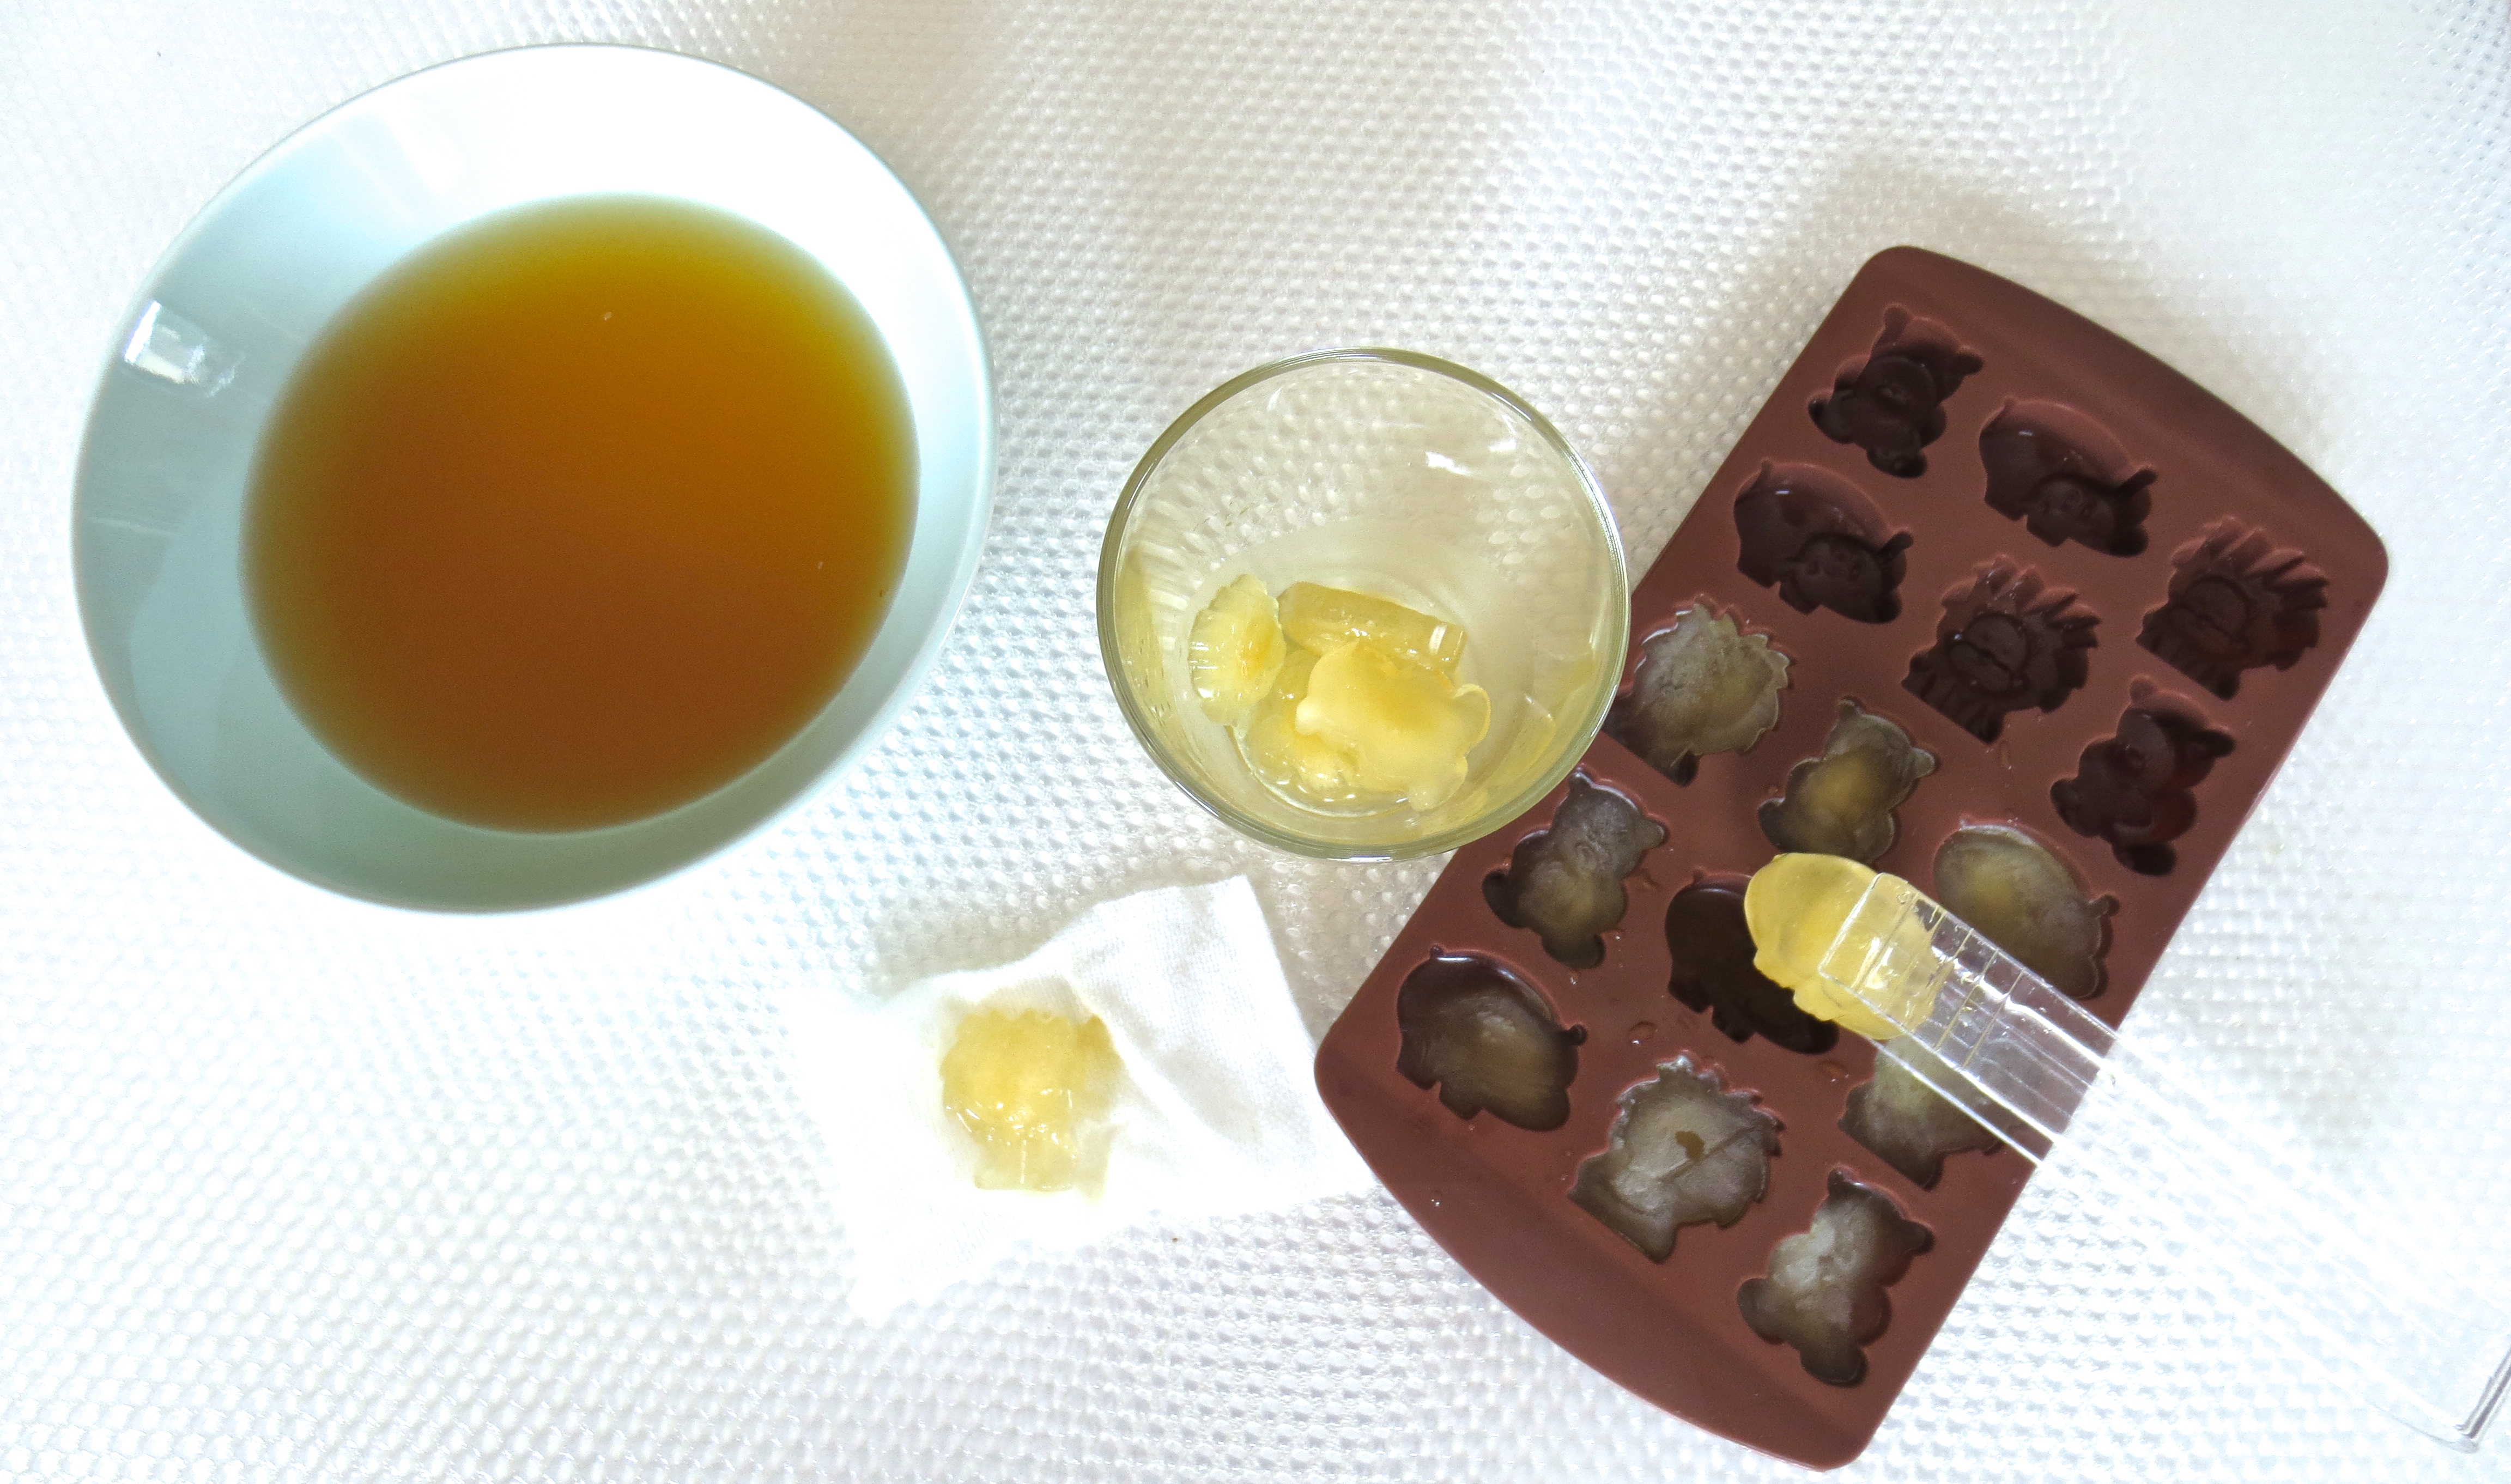 Green Tea Ice Cubes - perfect for depuffing hayfever-plagued eyes!